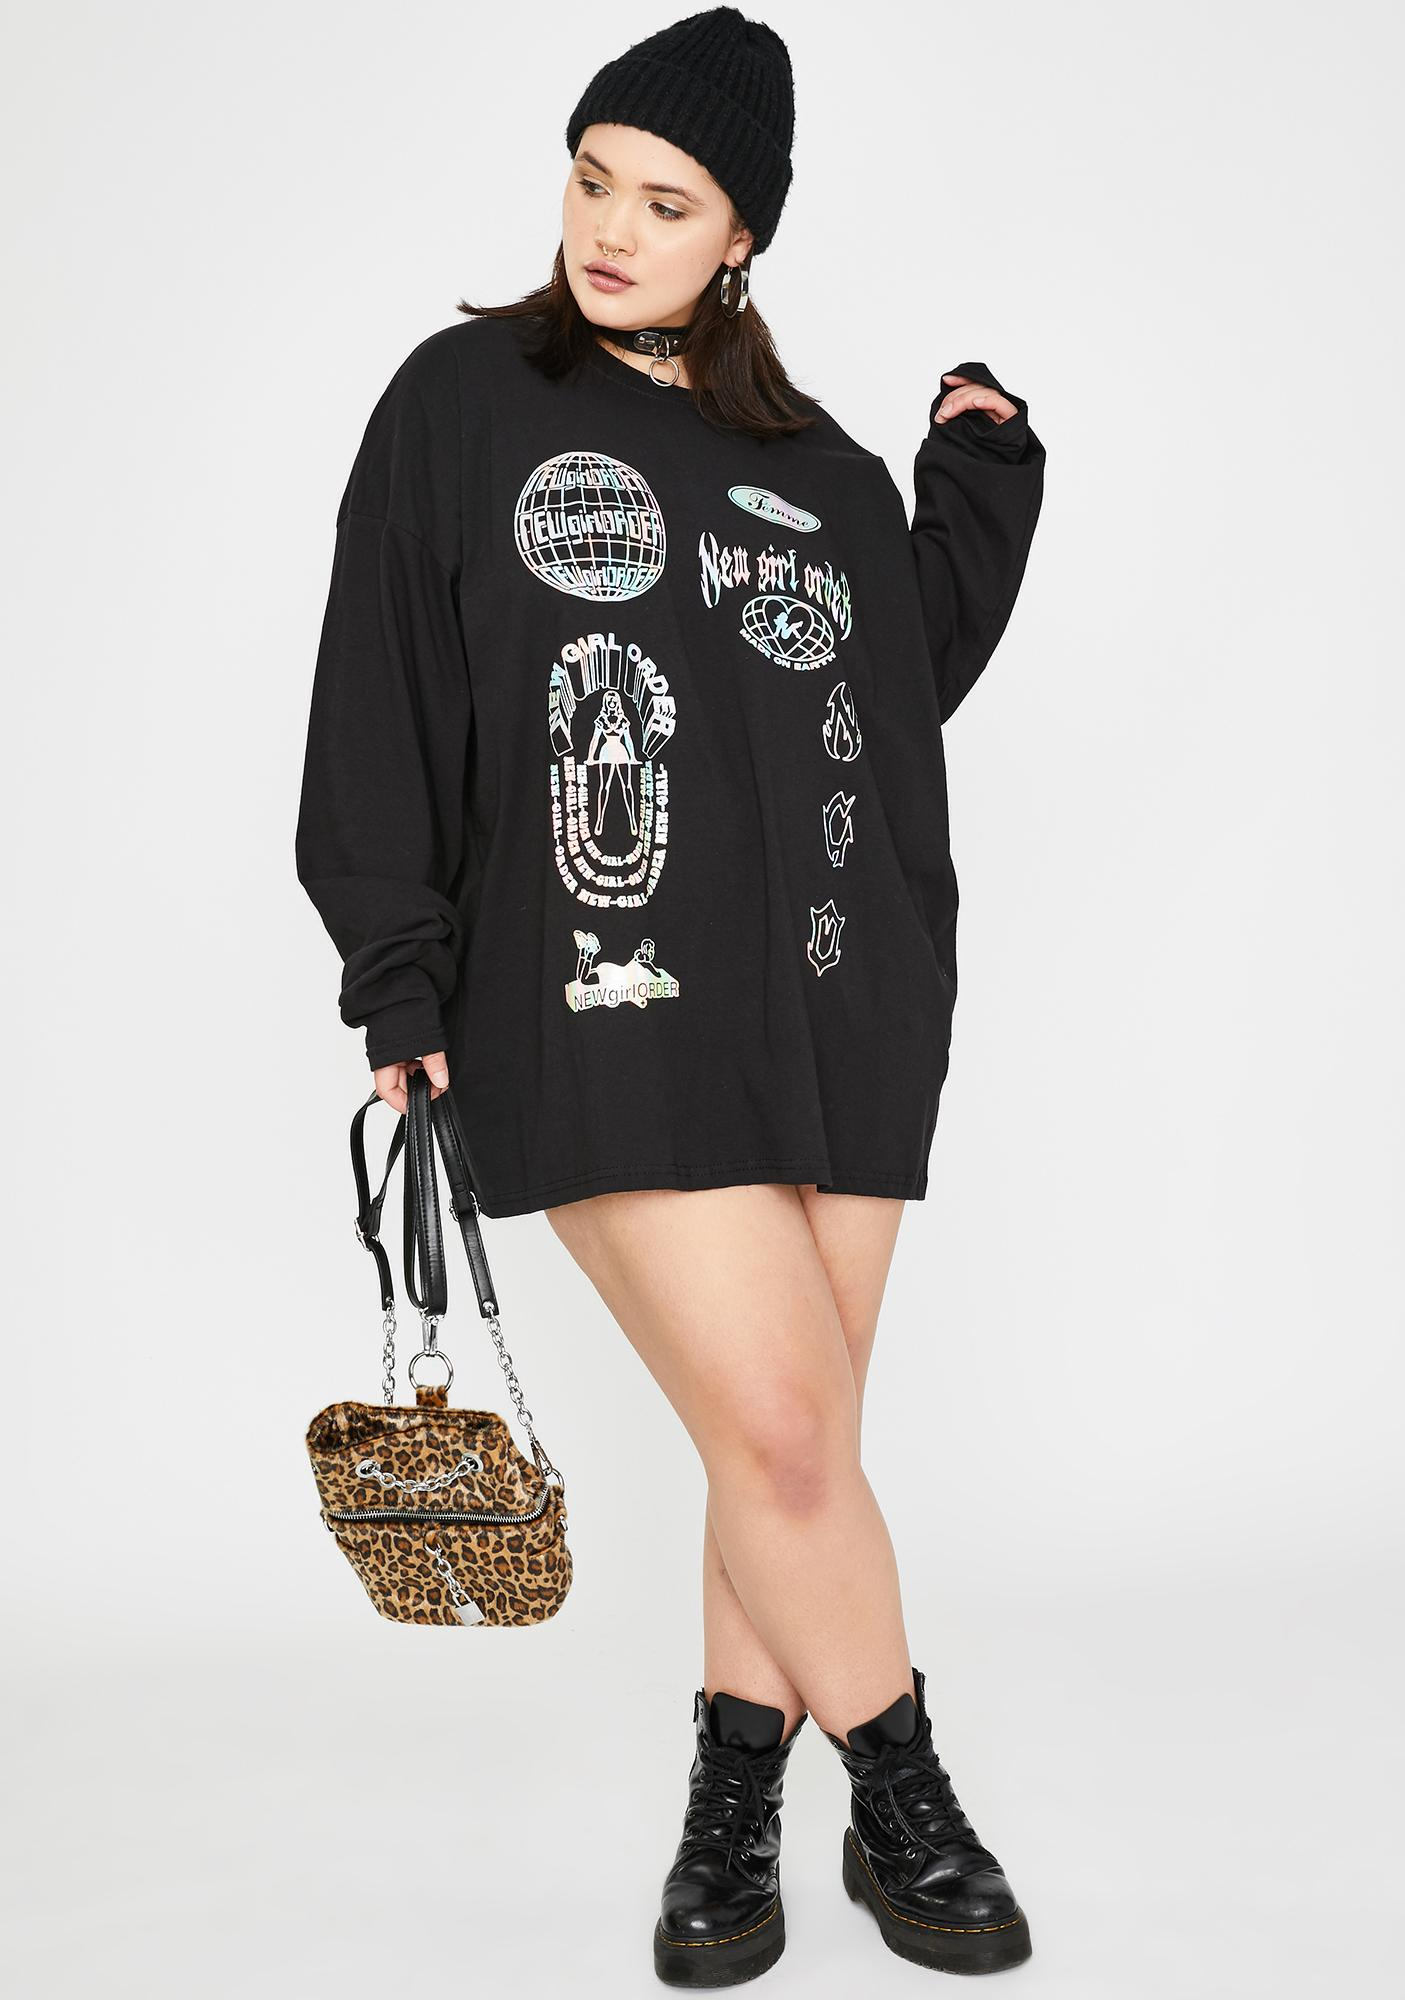 NEW GIRL ORDER Plus Holographic Graphic Long Sleeve